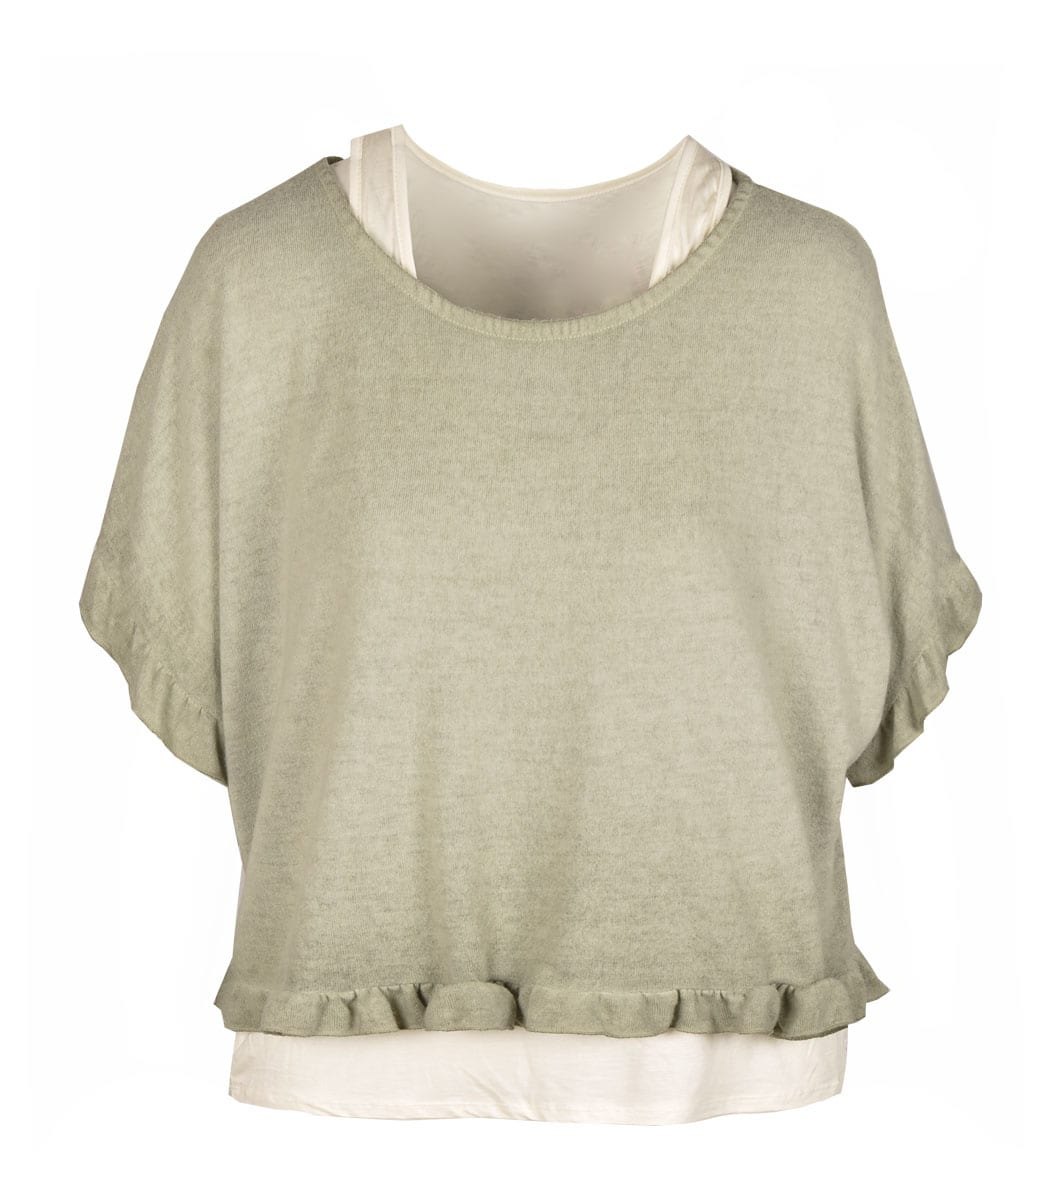 Double layer frill boxy top